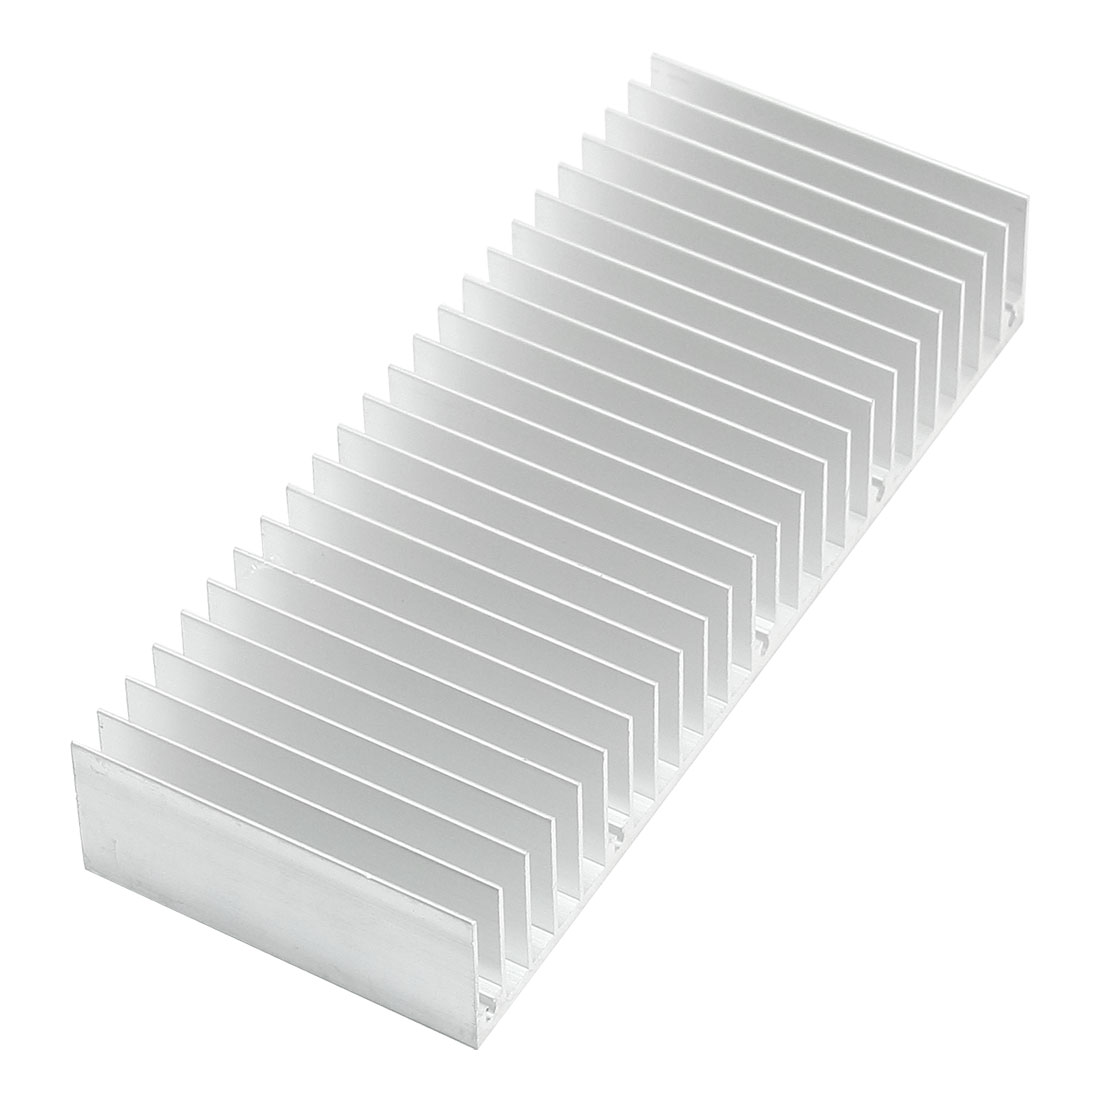 Aluminium Radiator Fin Heatsink Heat Sink 150mm x 60mm x 25mm for PC Motherboard